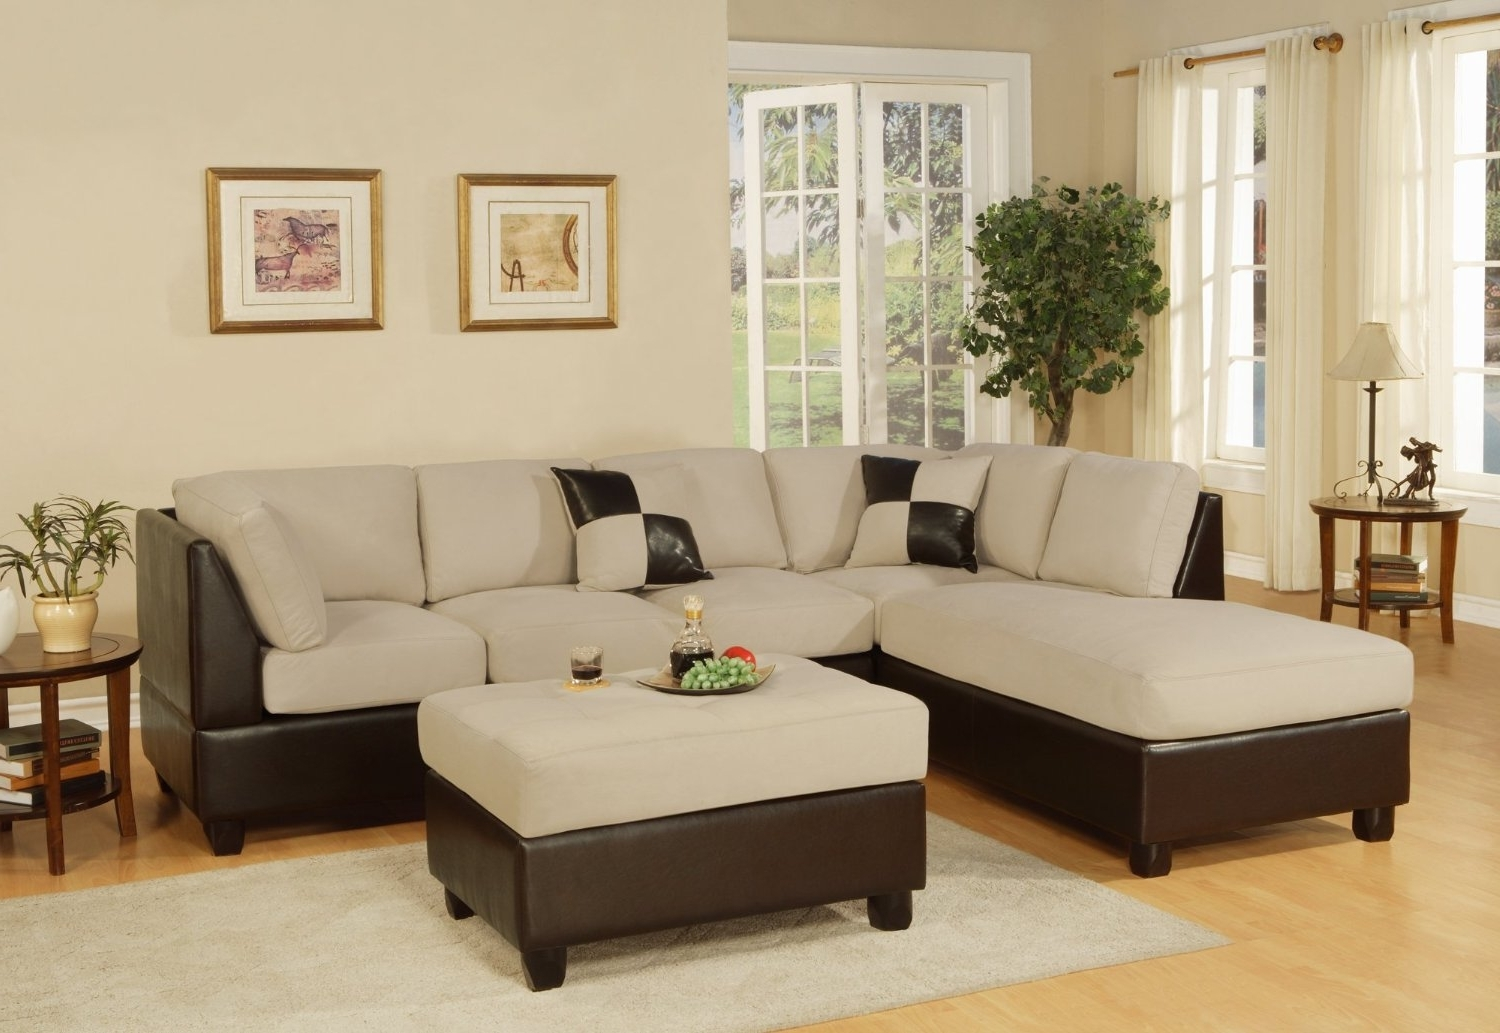 Hawaii Sectional Sofas Inside Fashionable Furniture : Microfiber Costco Sectional Sofa Furnitures (View 11 of 20)